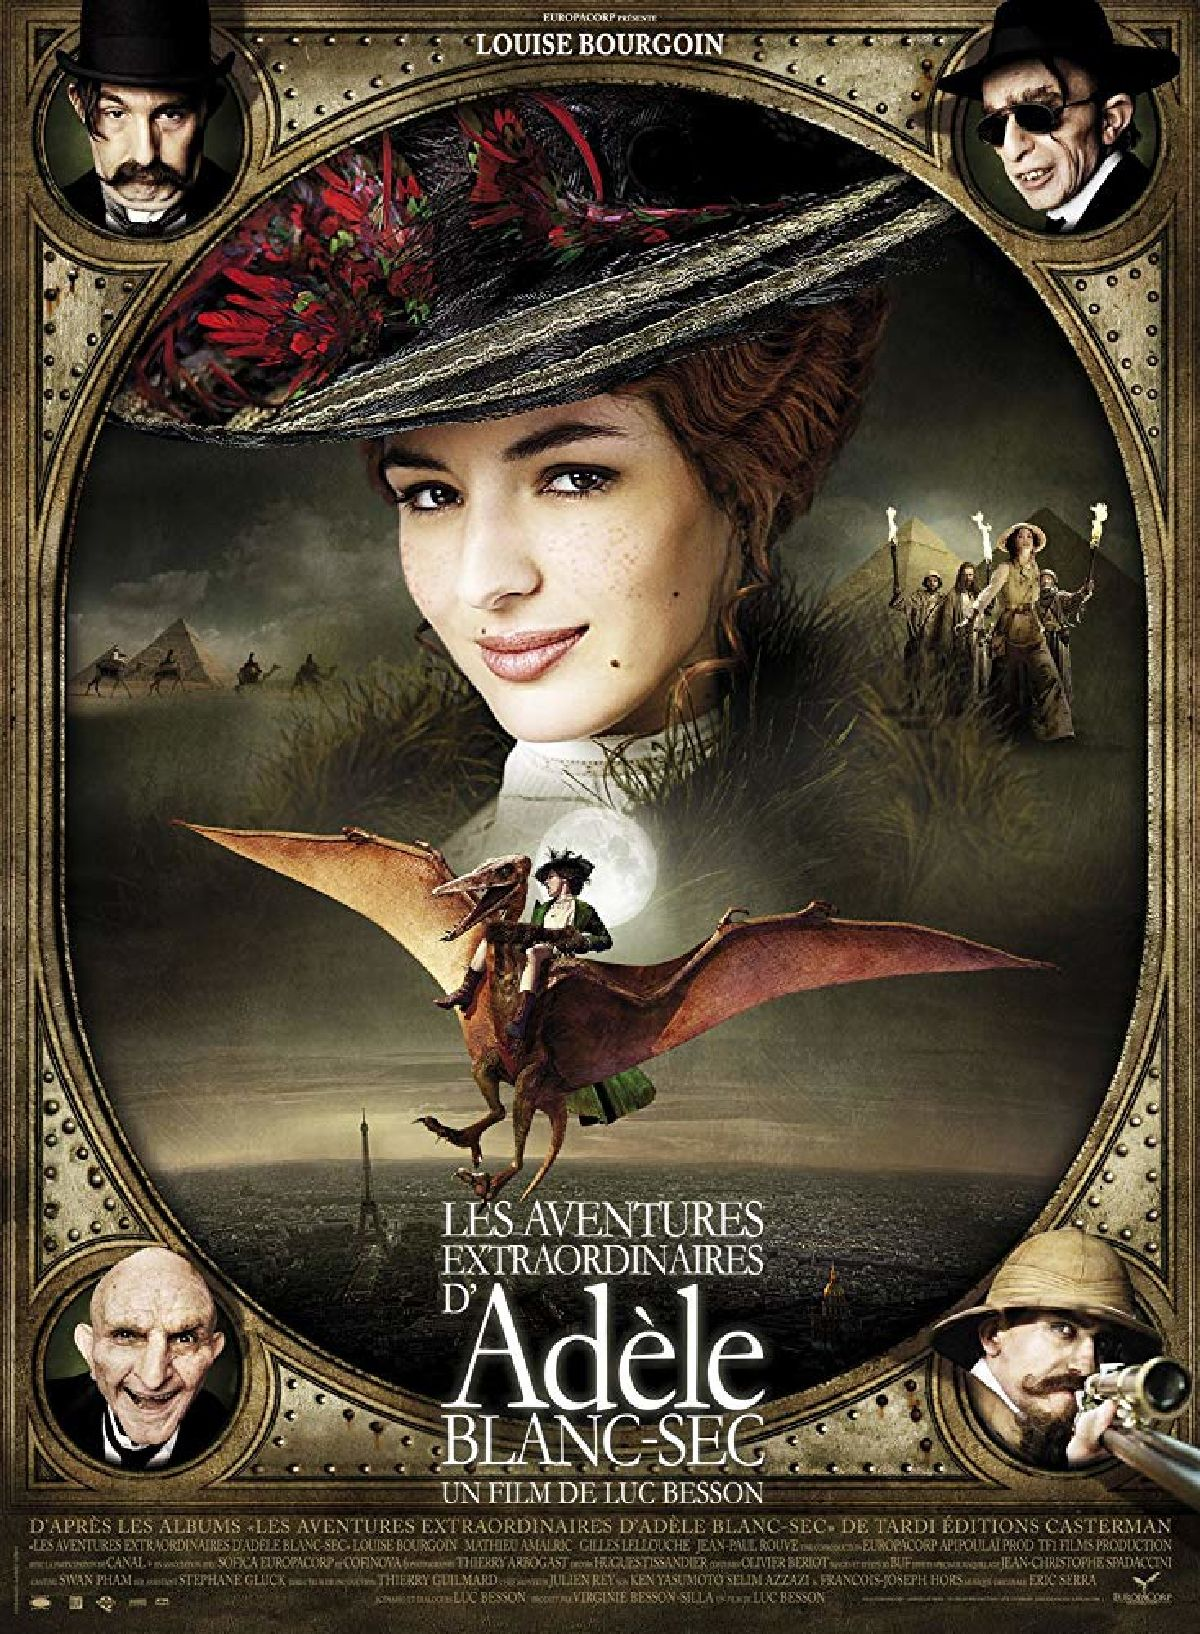 'The Extraordinary Adventures Of Adele Blanc-Sec (Les Aventures Extraordinaires D'Adele Blanc-Sec)' movie poster